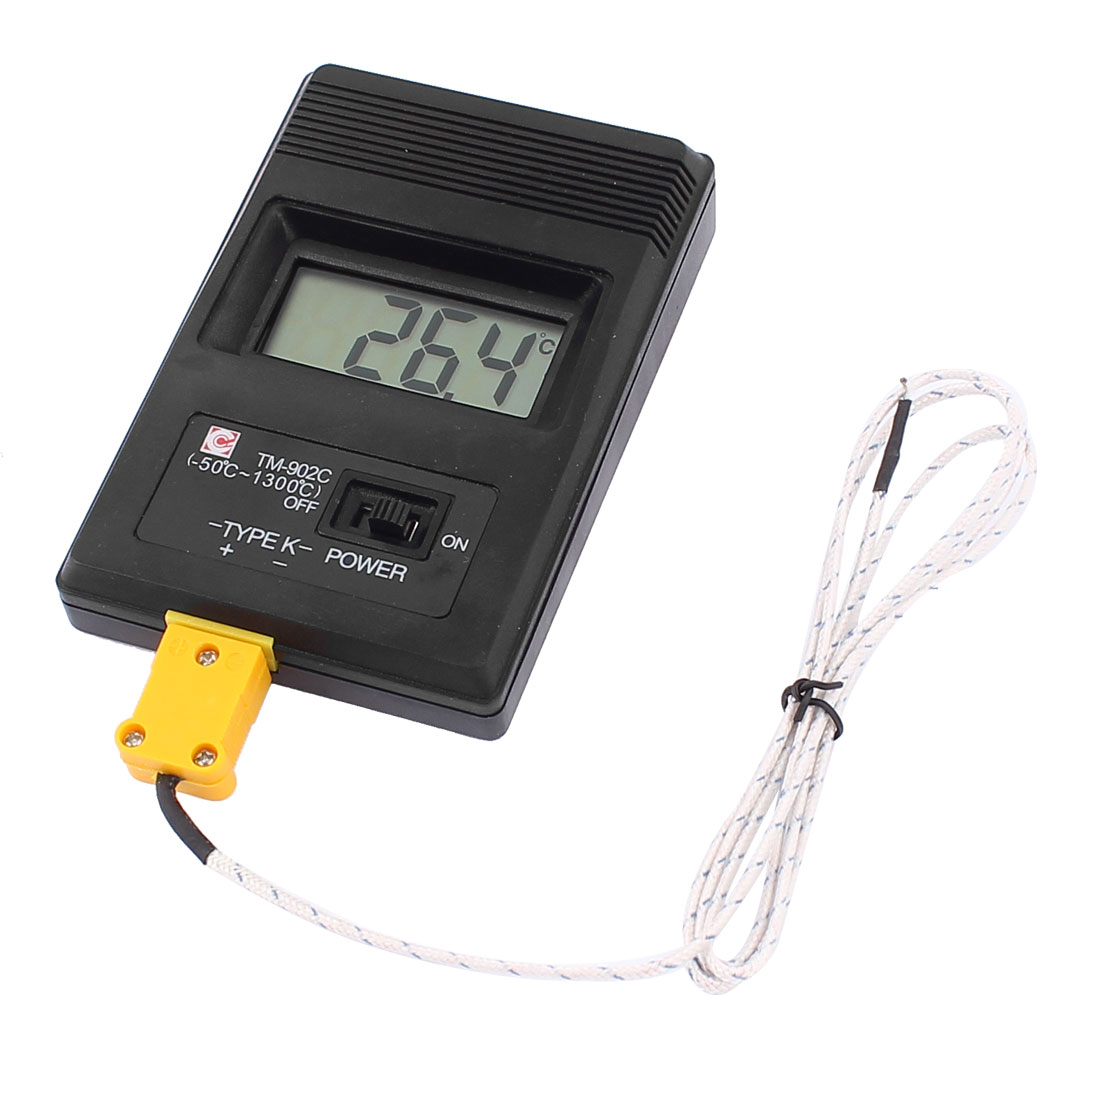 Unique Bargains LCD K-Type Digital Thermometer Measure TM-902C w 2 Thermocouple Probe